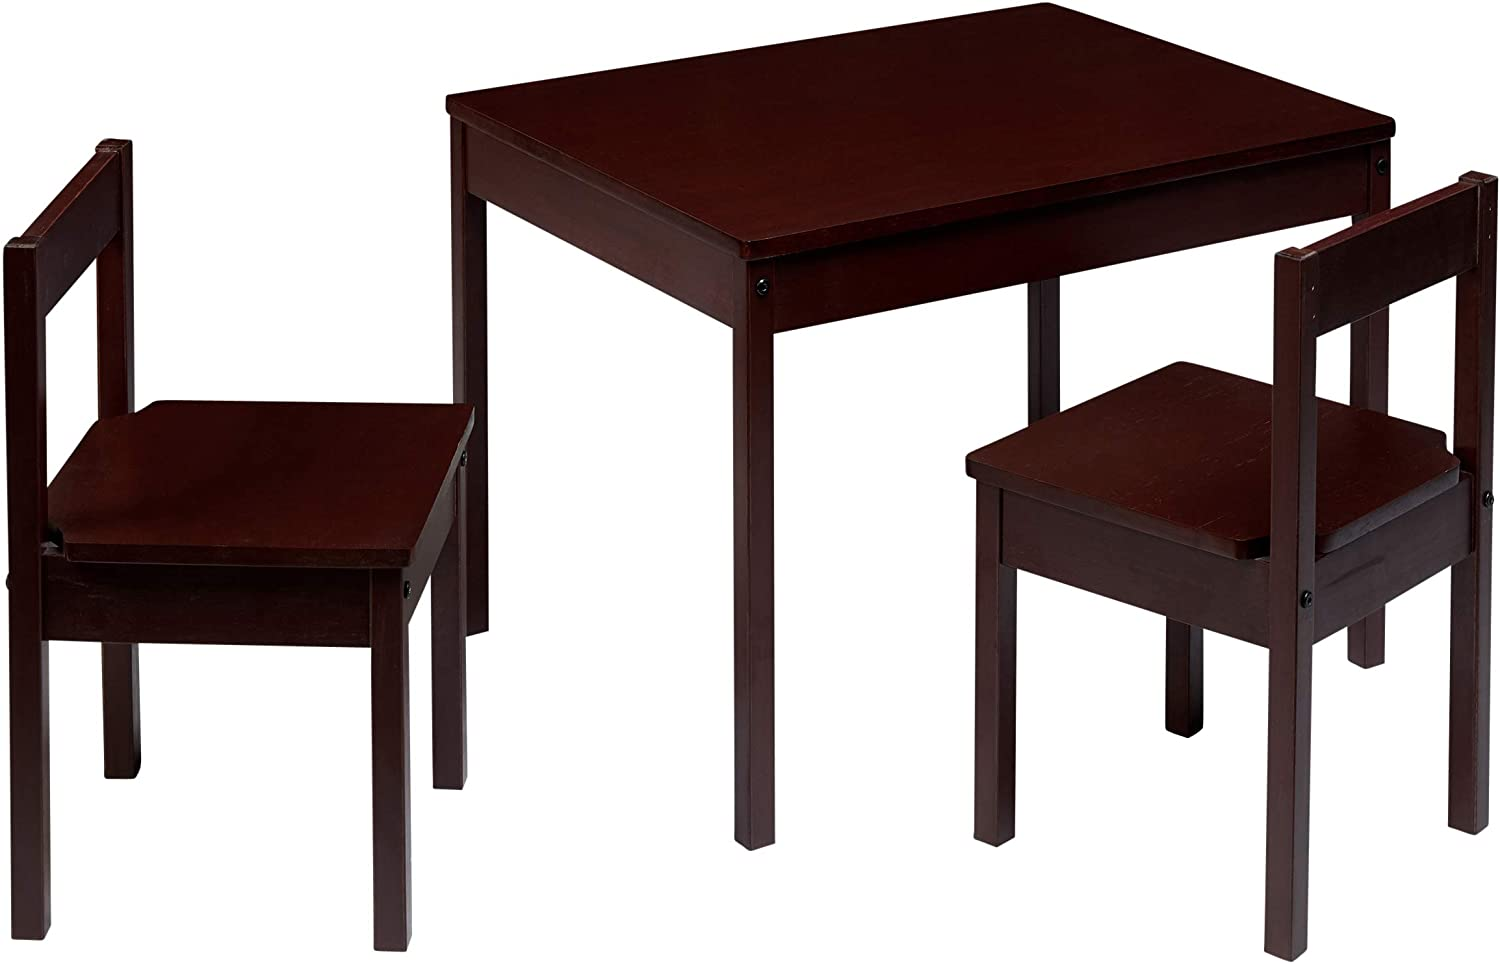 AmazonBasics Solid Wood Kiddie Table Set with Two Chairs, Espresso